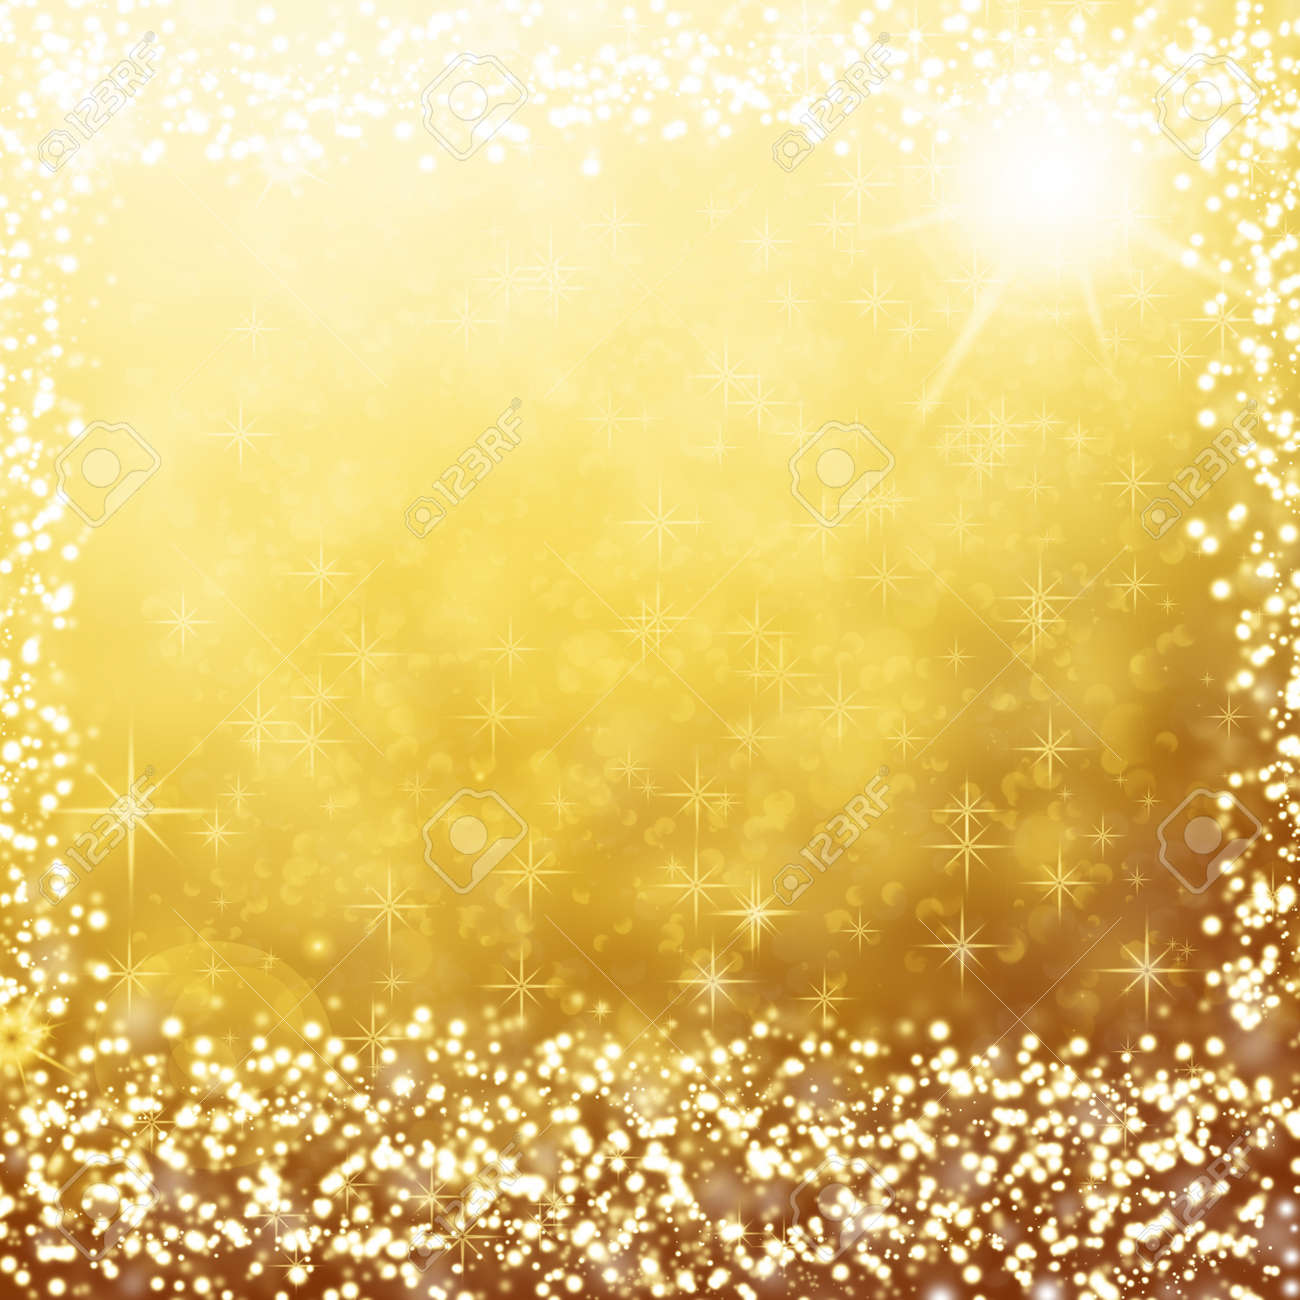 gold christmas background text frame with white stars, snow flakes, sparkles and copy space for text Stock Photo - 16162971